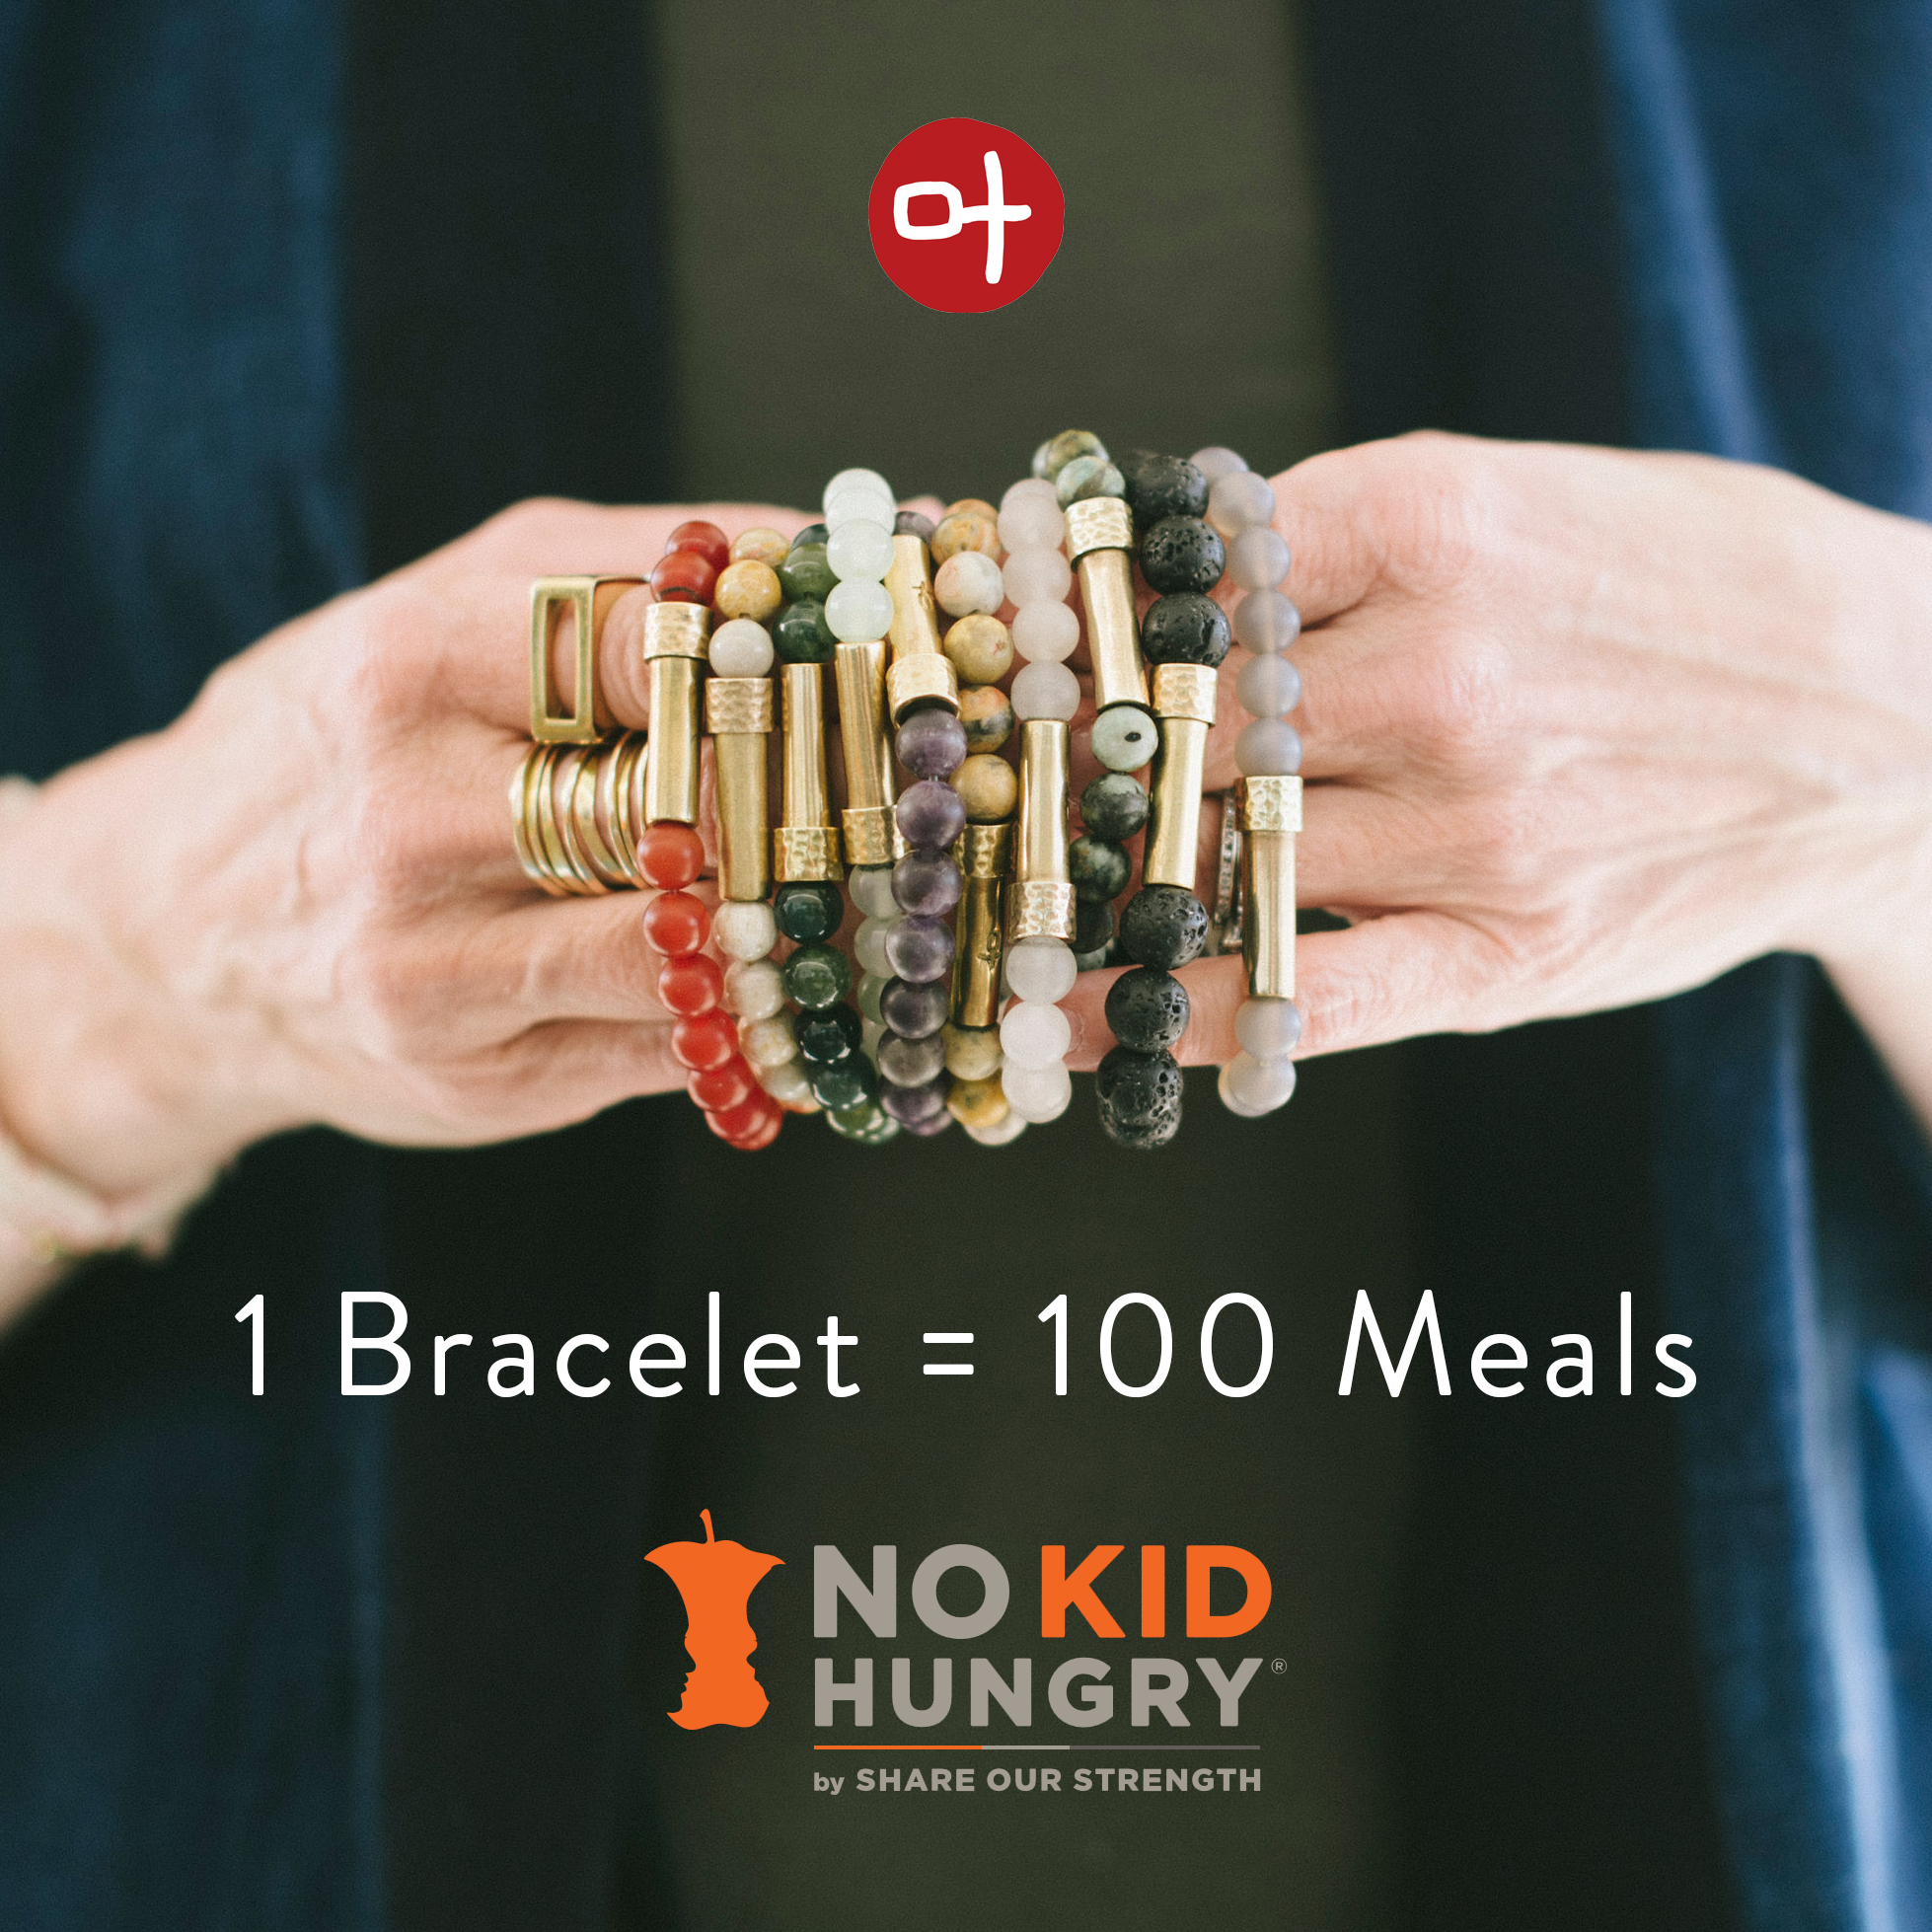 1 Bracelet = 100 Meals with No Kid Hungry